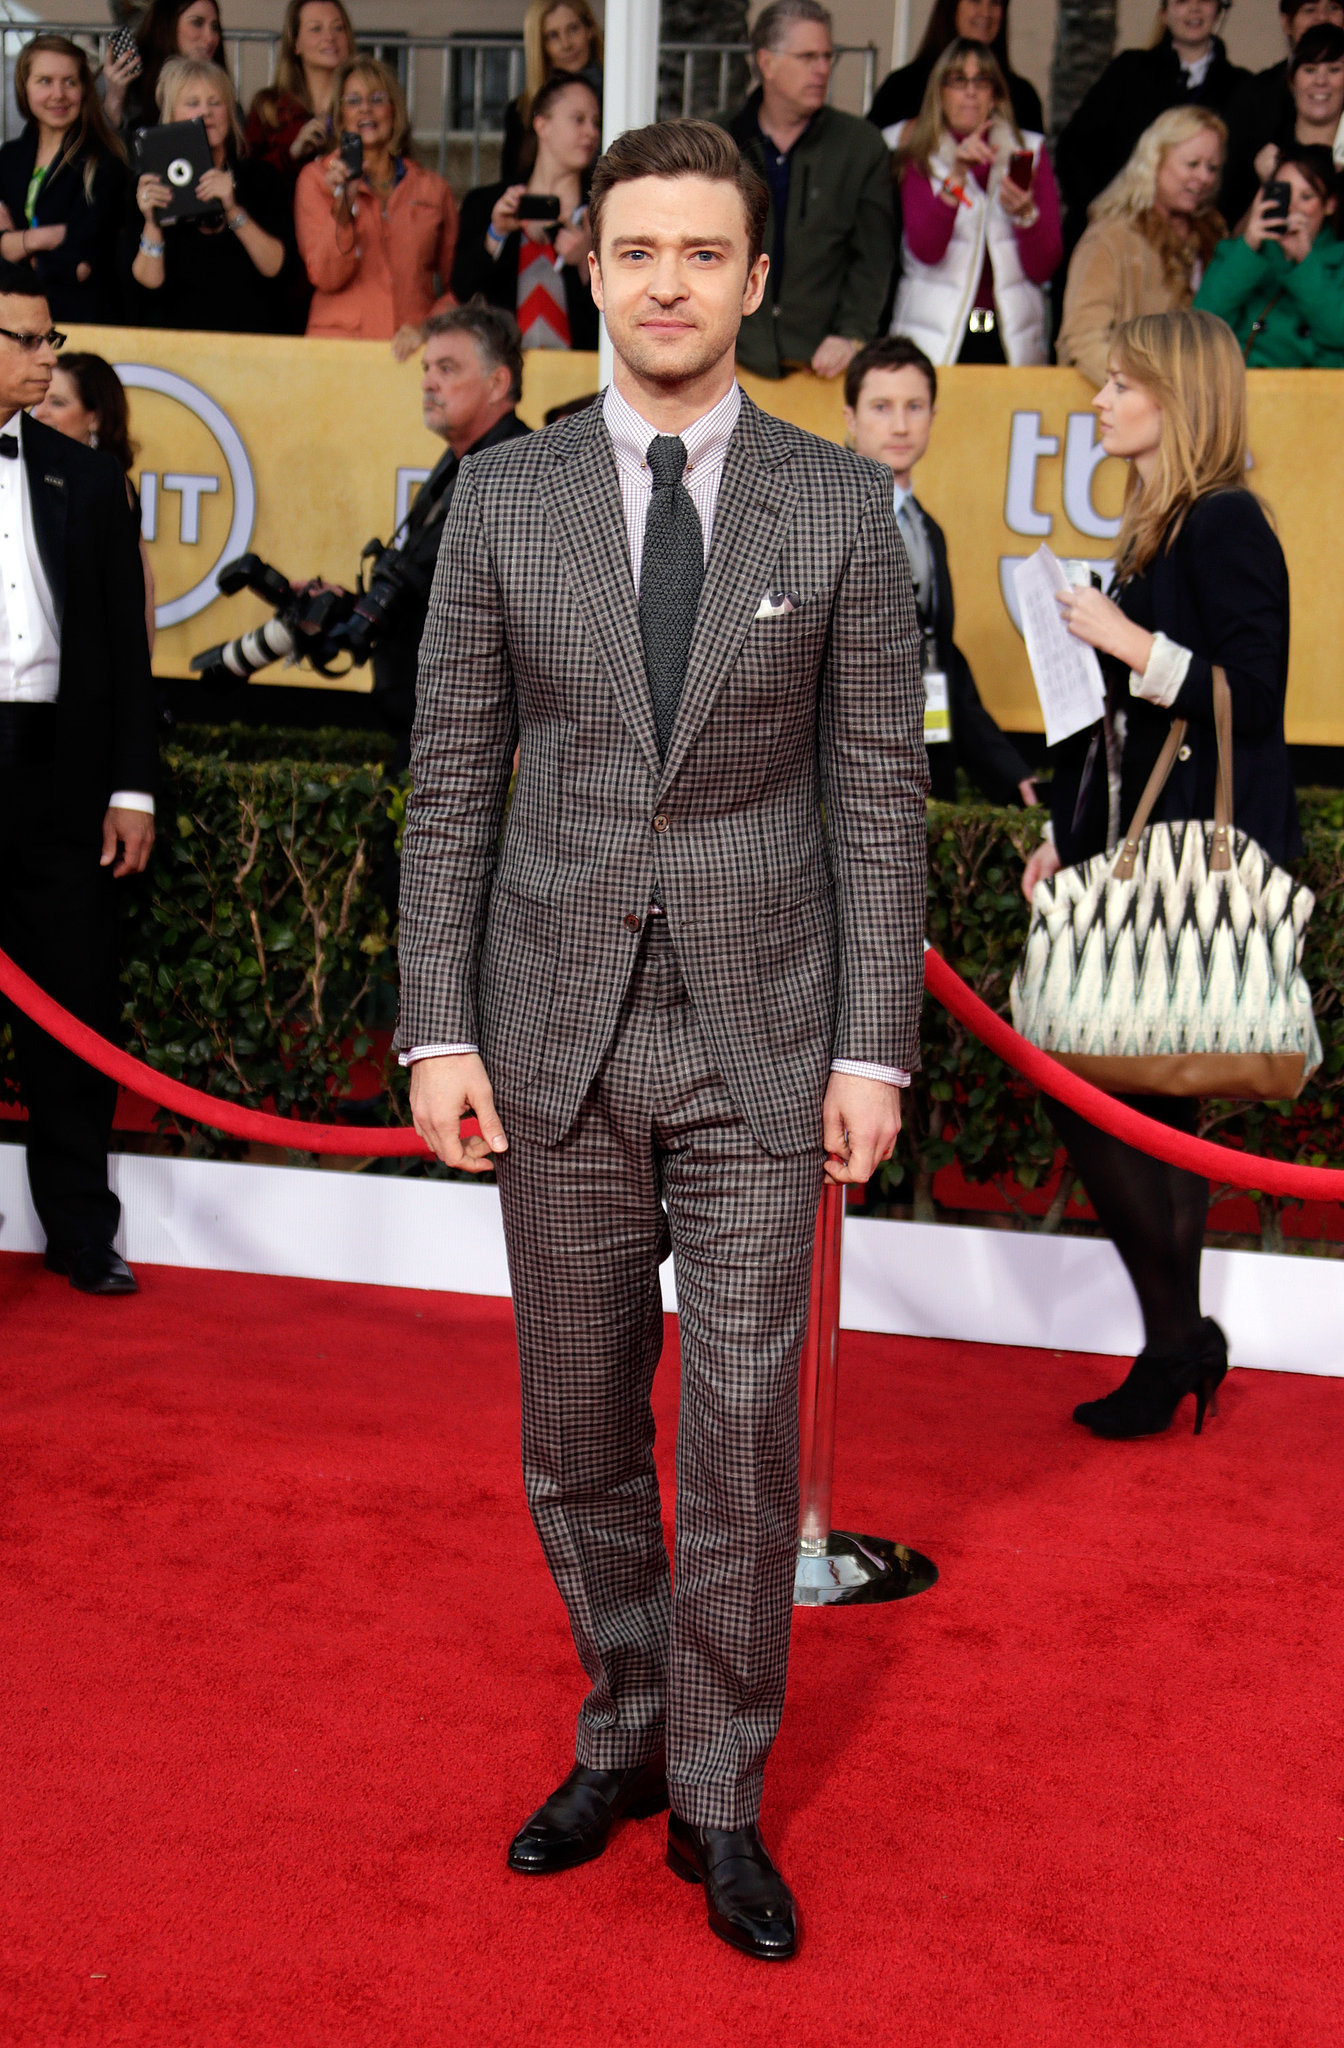 Justin was a sight for sore eyes in a checked Tom Ford suit at the SAG Awards in 2013.